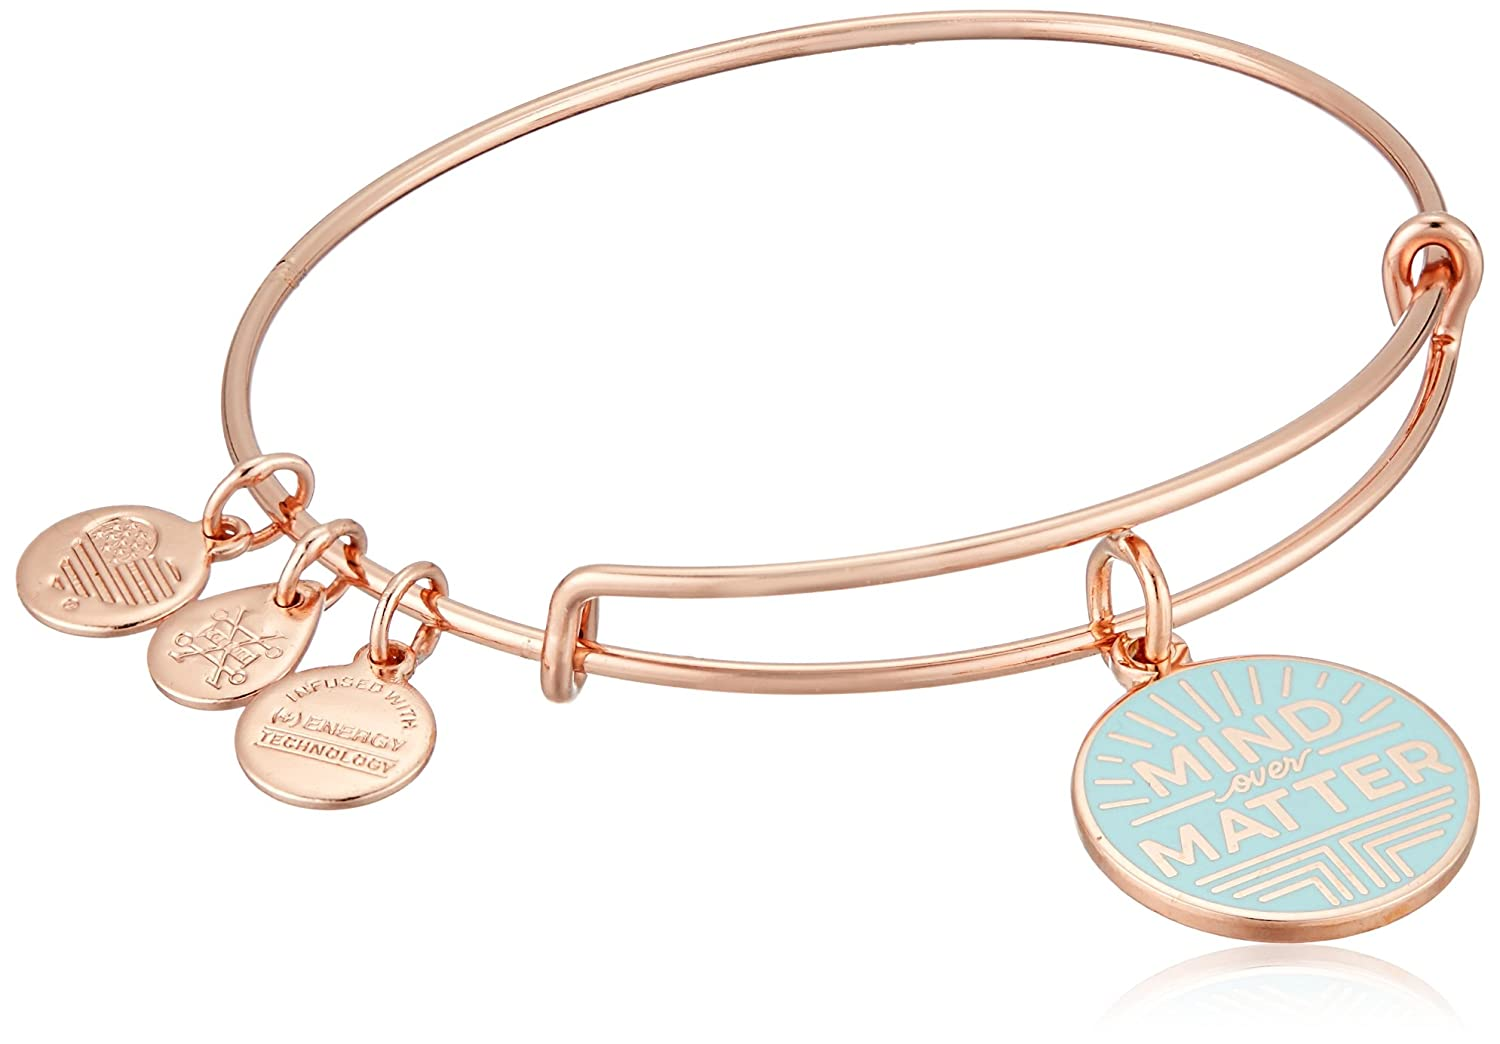 Alex and Ani Words are Powerful, Mind Over Matter EWB Bangle Bracelet A17EBWAP08SR